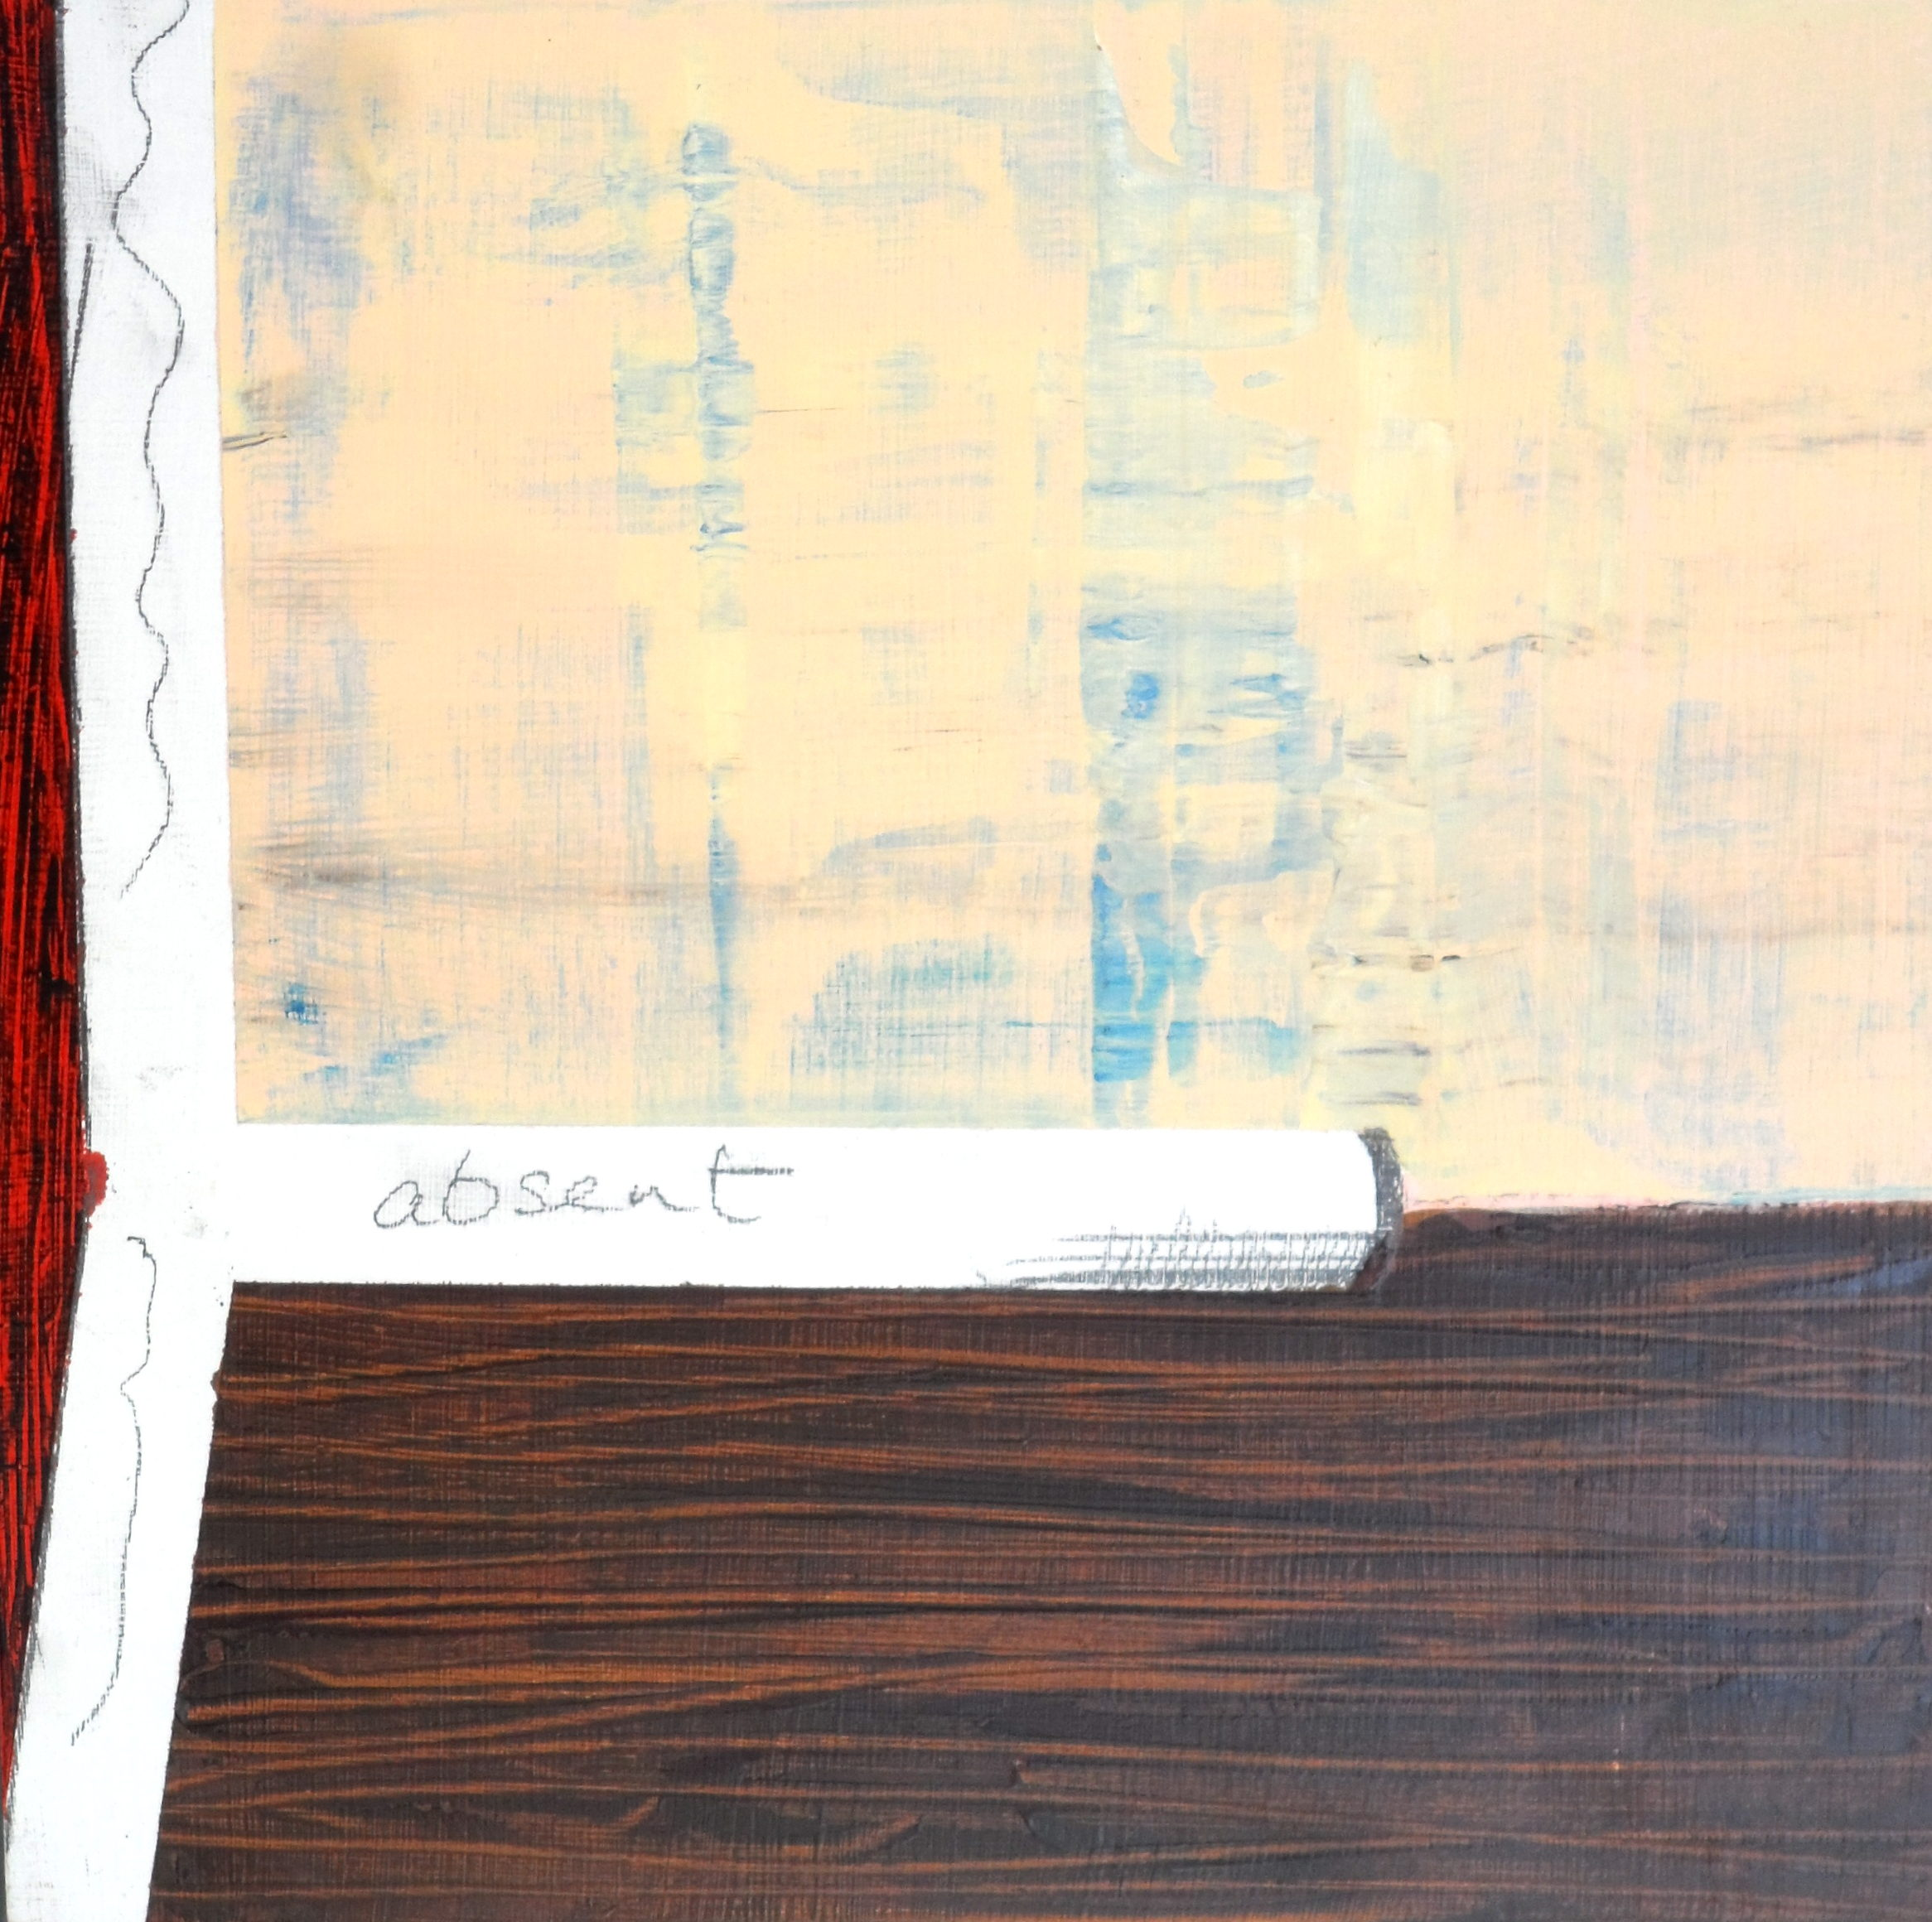 Absentee 2, Acrylic, oil and pencil on board